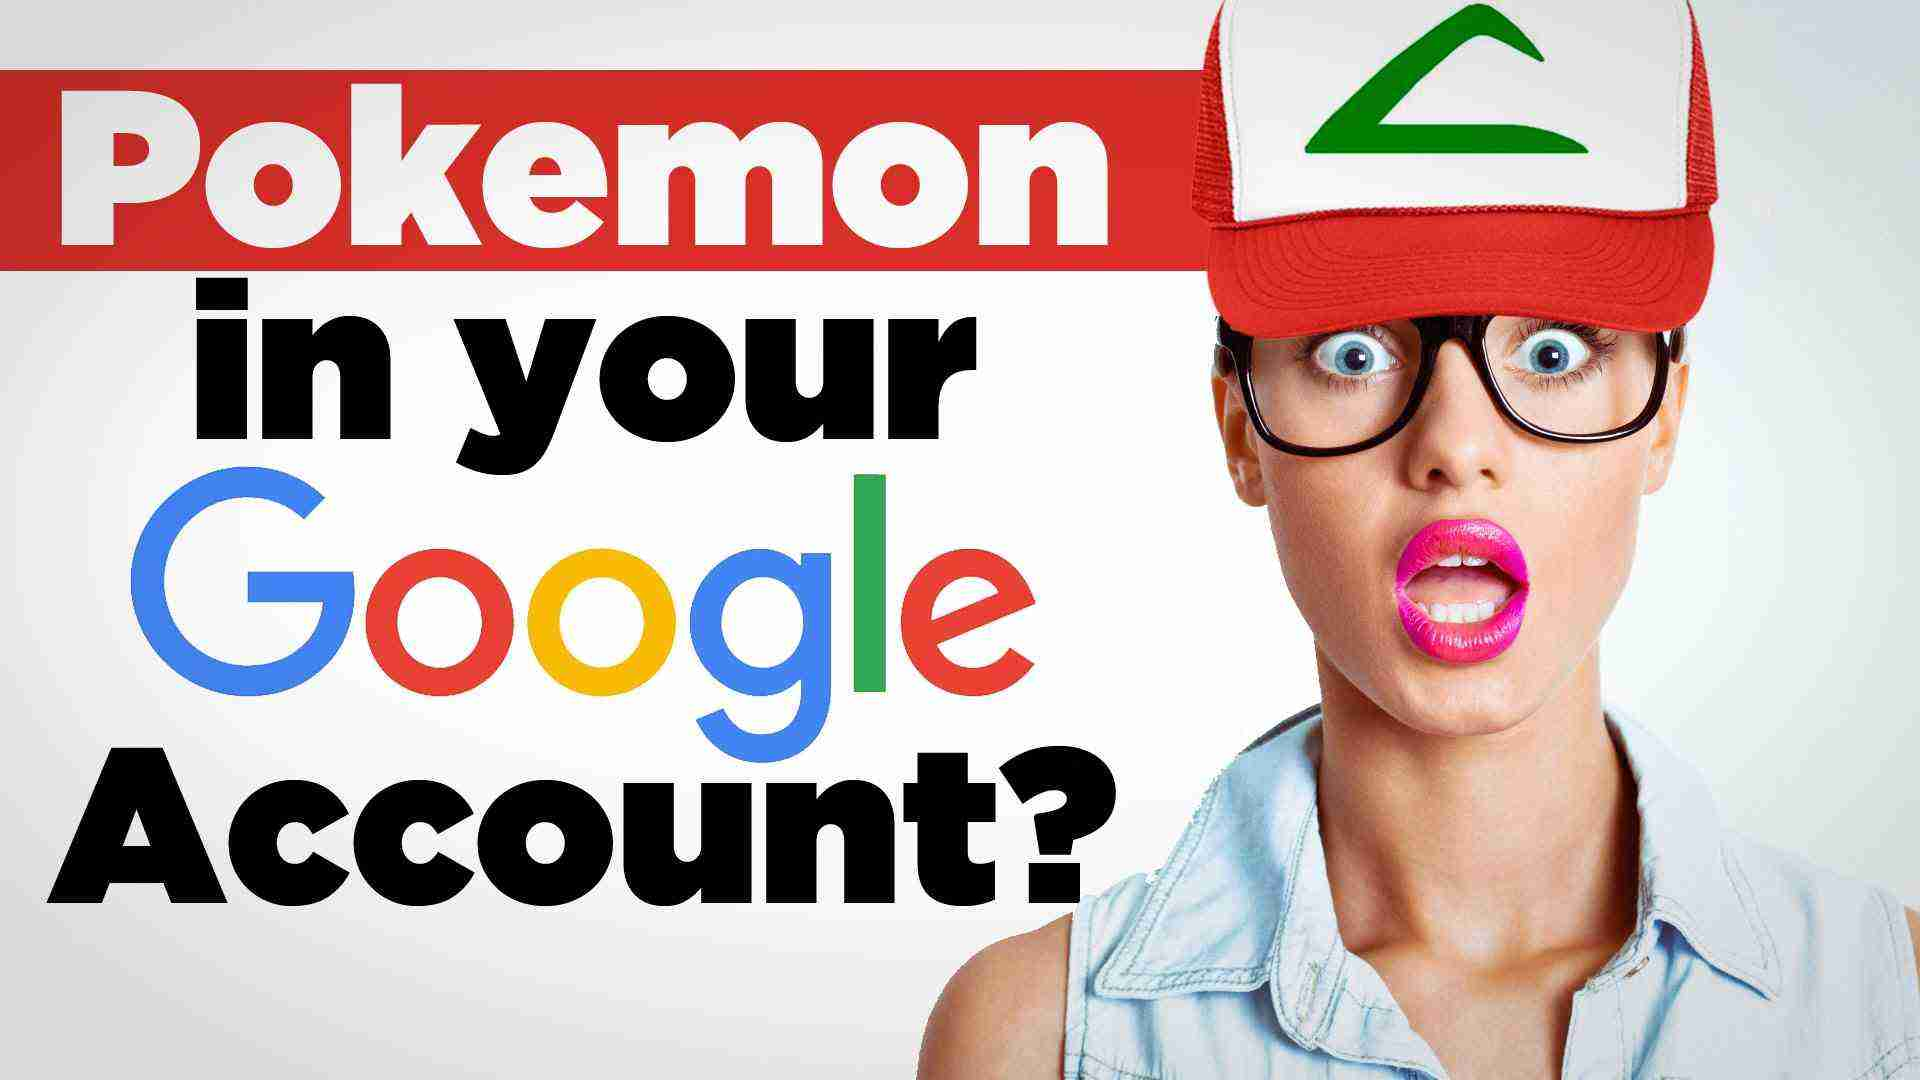 Is Pokemon Go Accessing Your Google Account? – Inside Gaming Daily